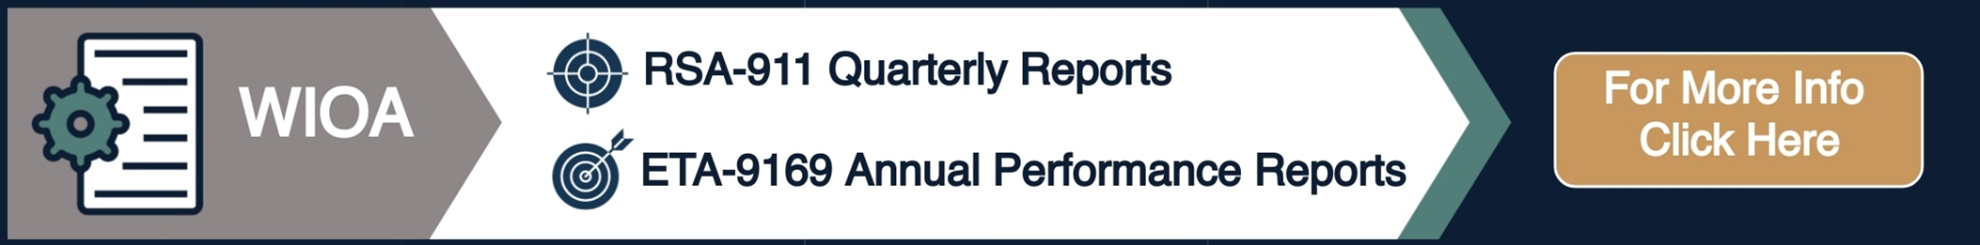 WIOA - RSA-911 Quarterly Reports and ETA-9169 Annual Performance Reports. For more info click the image.